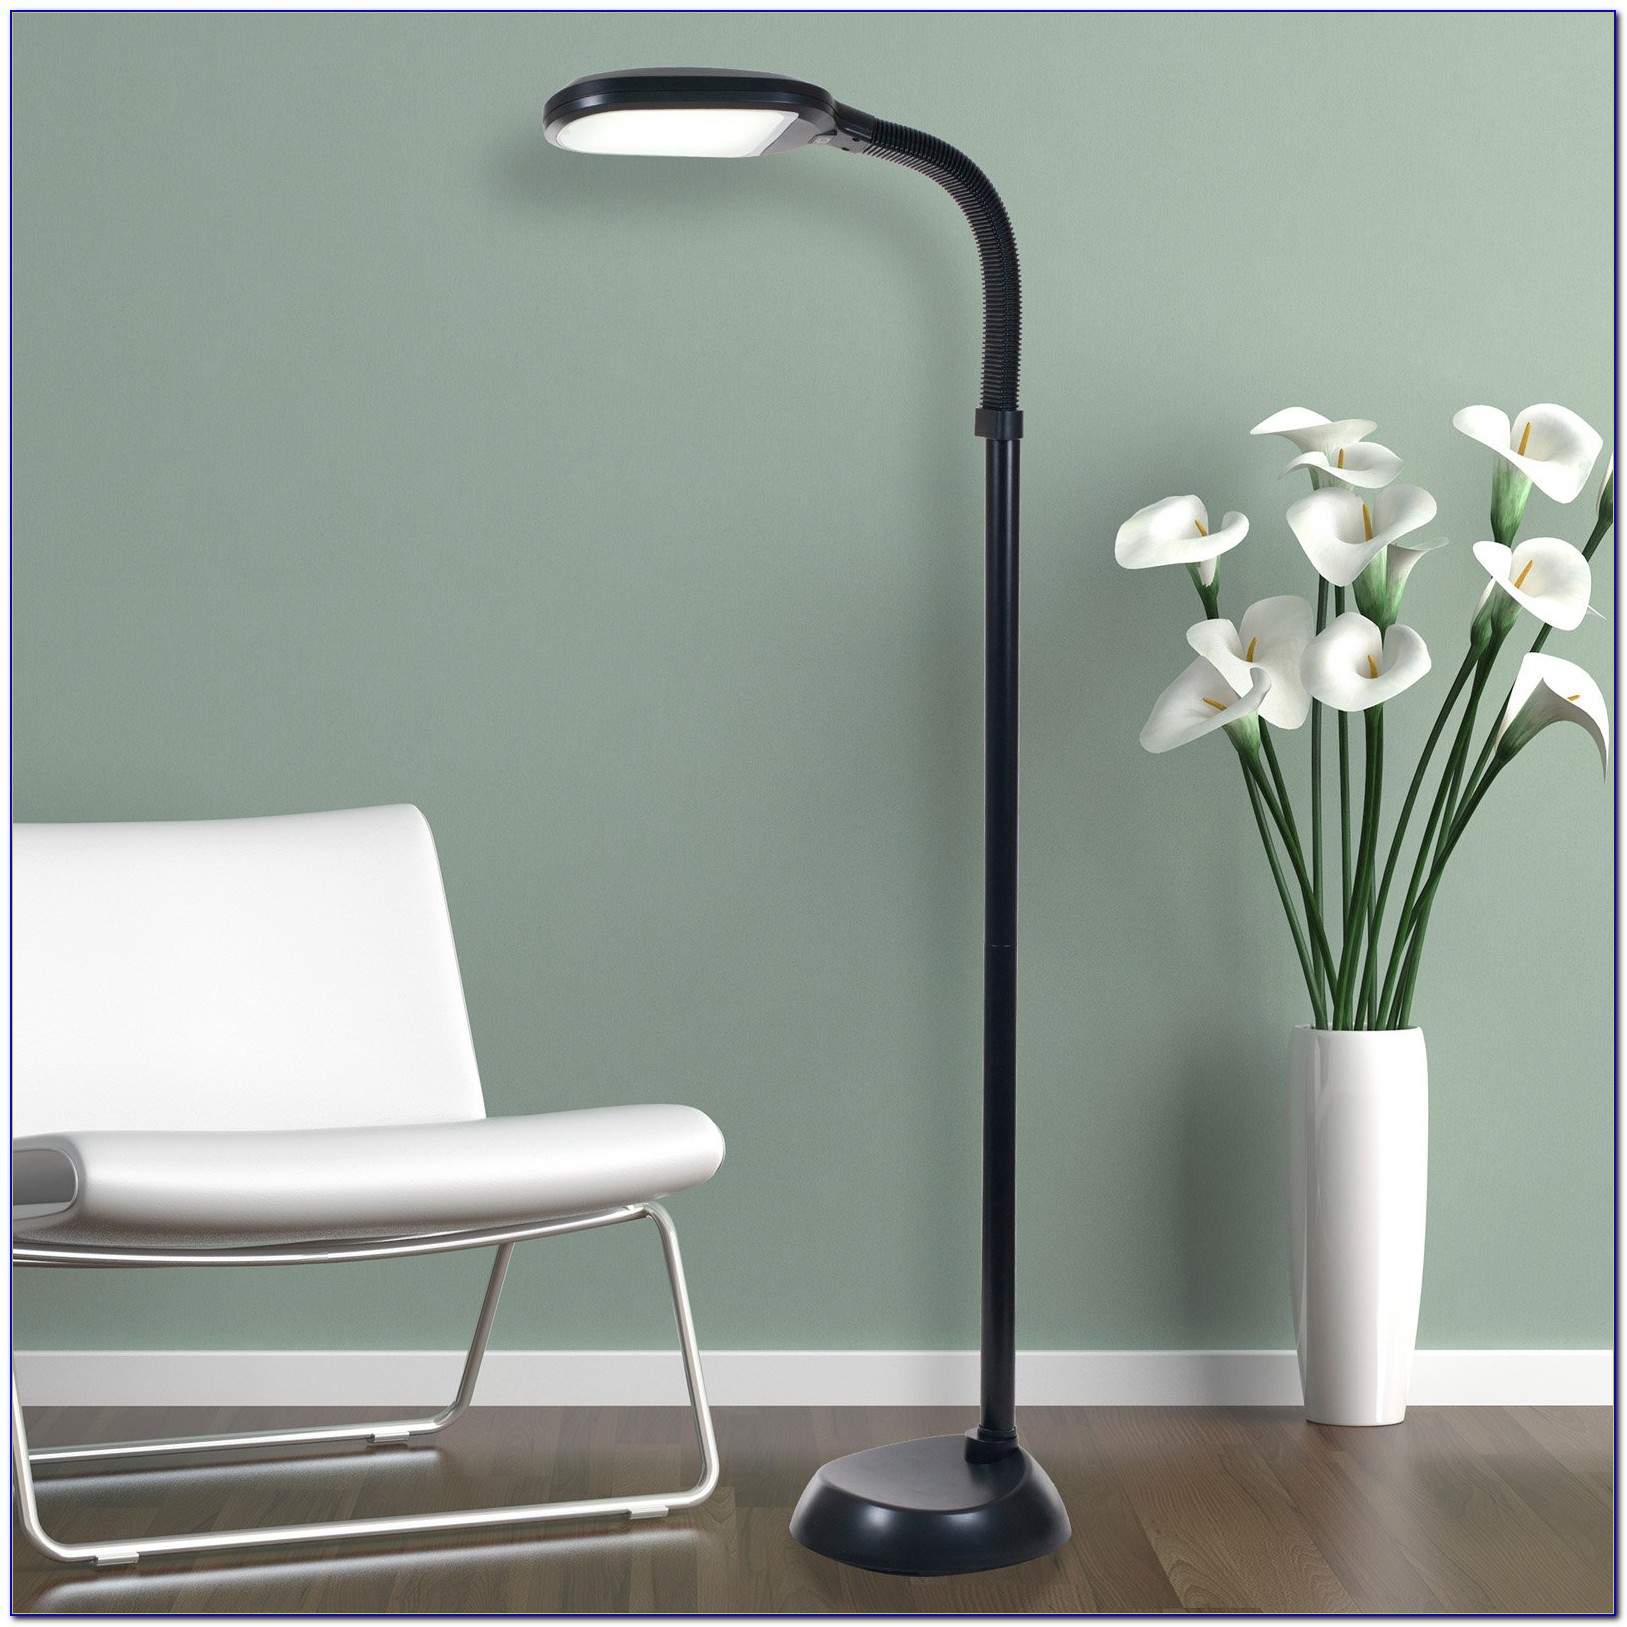 Uplighter floor lamp with dimmer switch flooring home for Uplighter floor lamp with dimmer switch